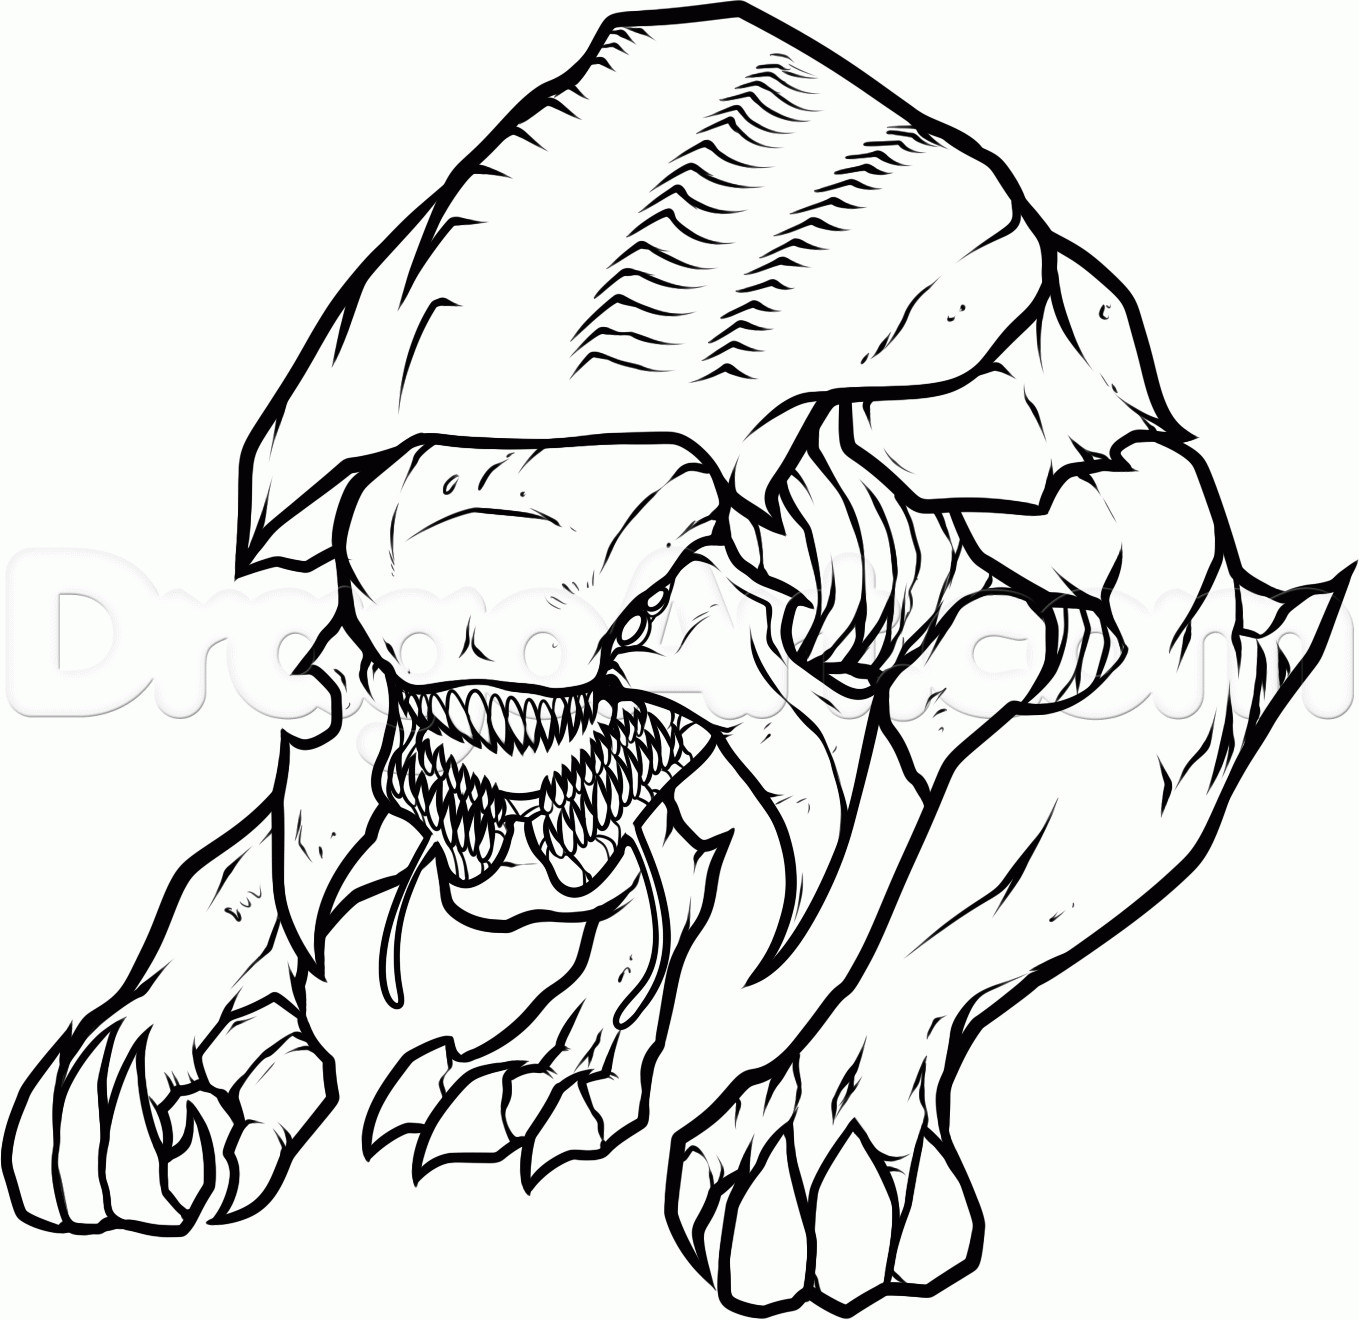 The Best Free Peashooter Coloring Page Images Download From 34 Free Coloring Pages Of Peashooter At Getdrawings